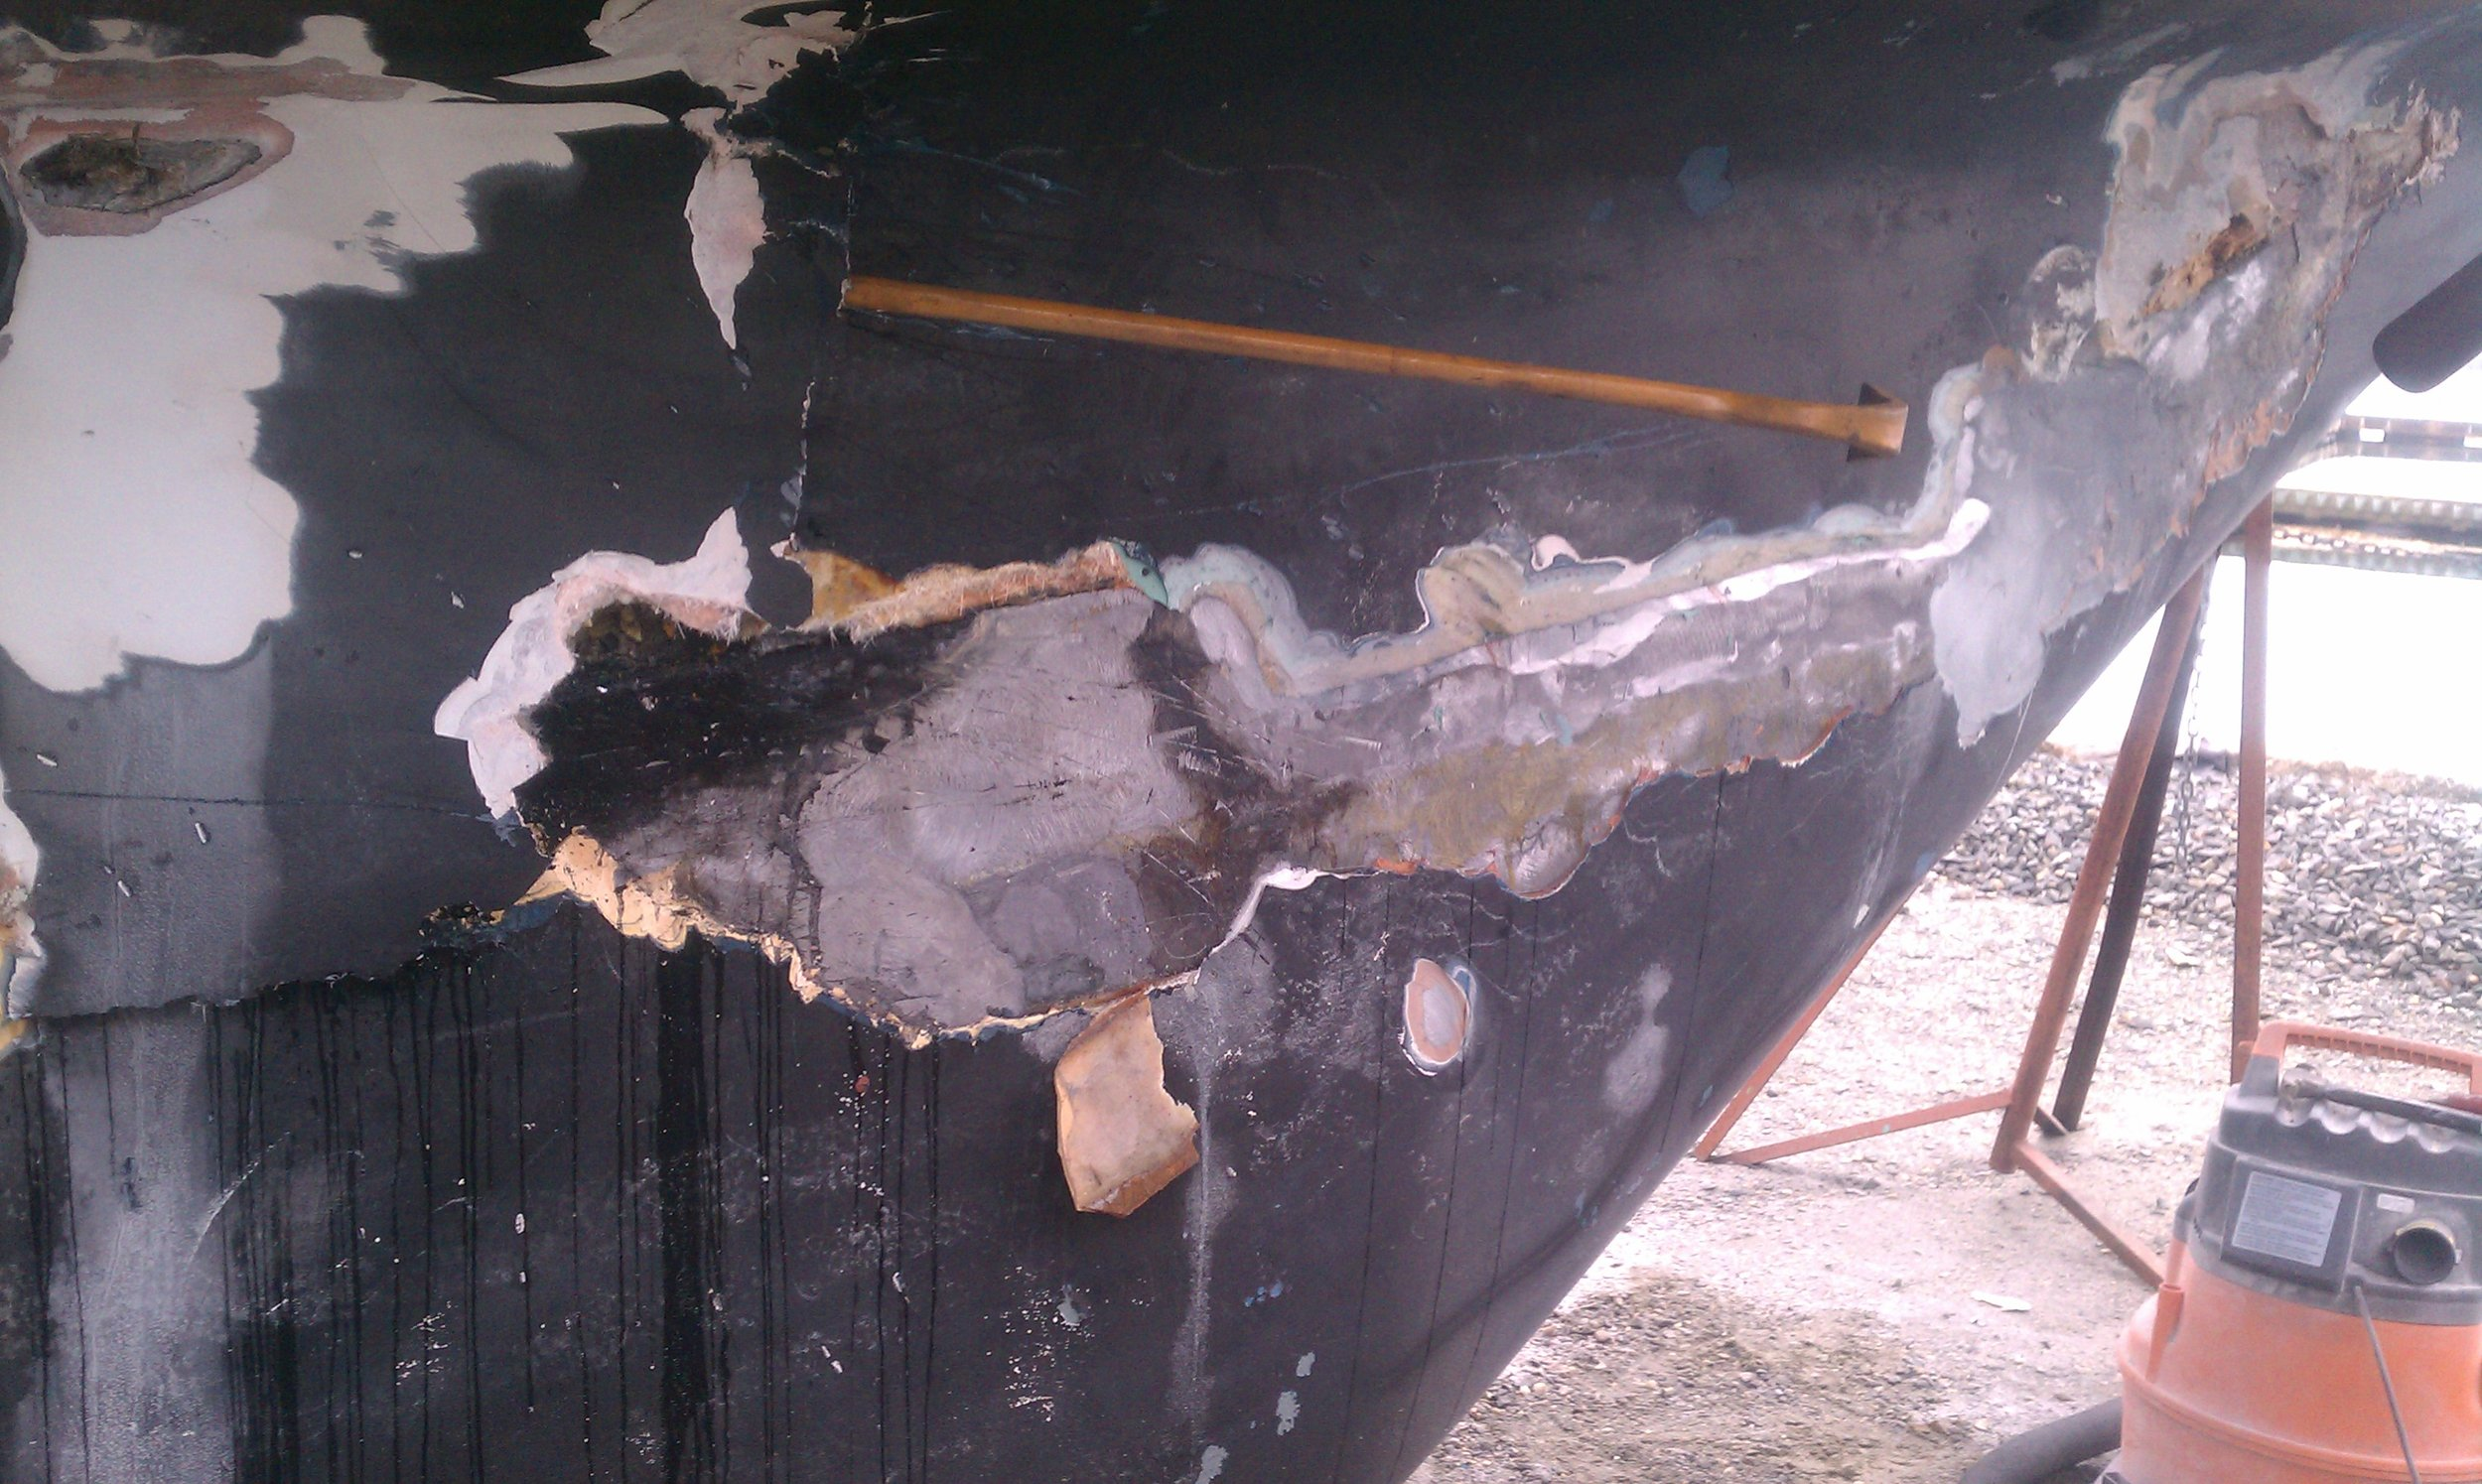 Initial investigation below the keel to hull joint revealing severe damage.